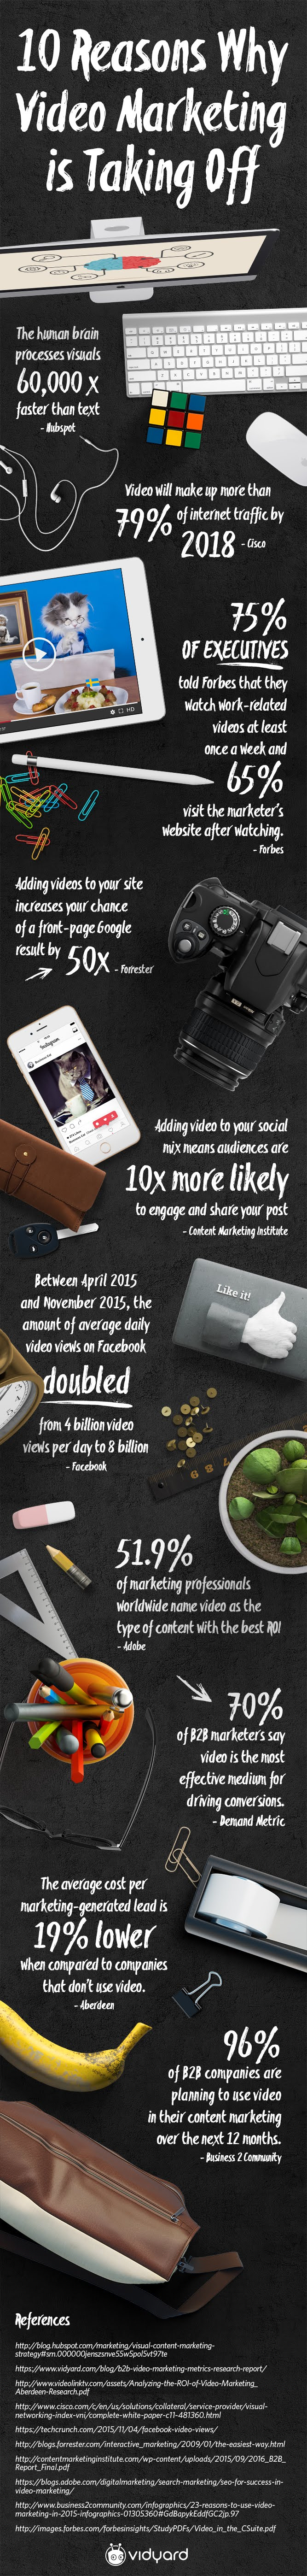 10 Amazing Facts That Will Turn You Into A Video Marketing Advocate - #Infographic